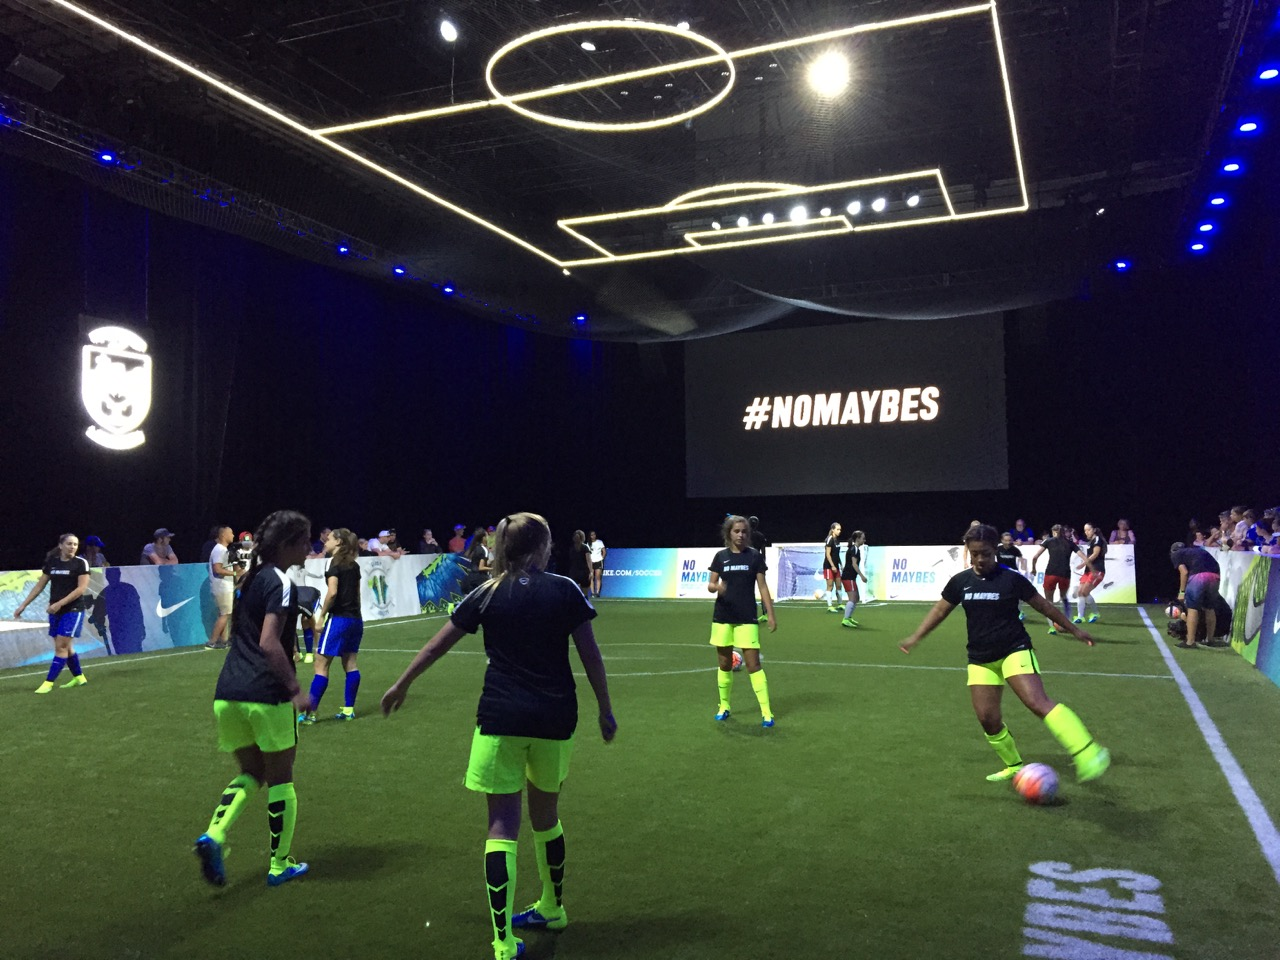 Nike Underground at Women's World Cup